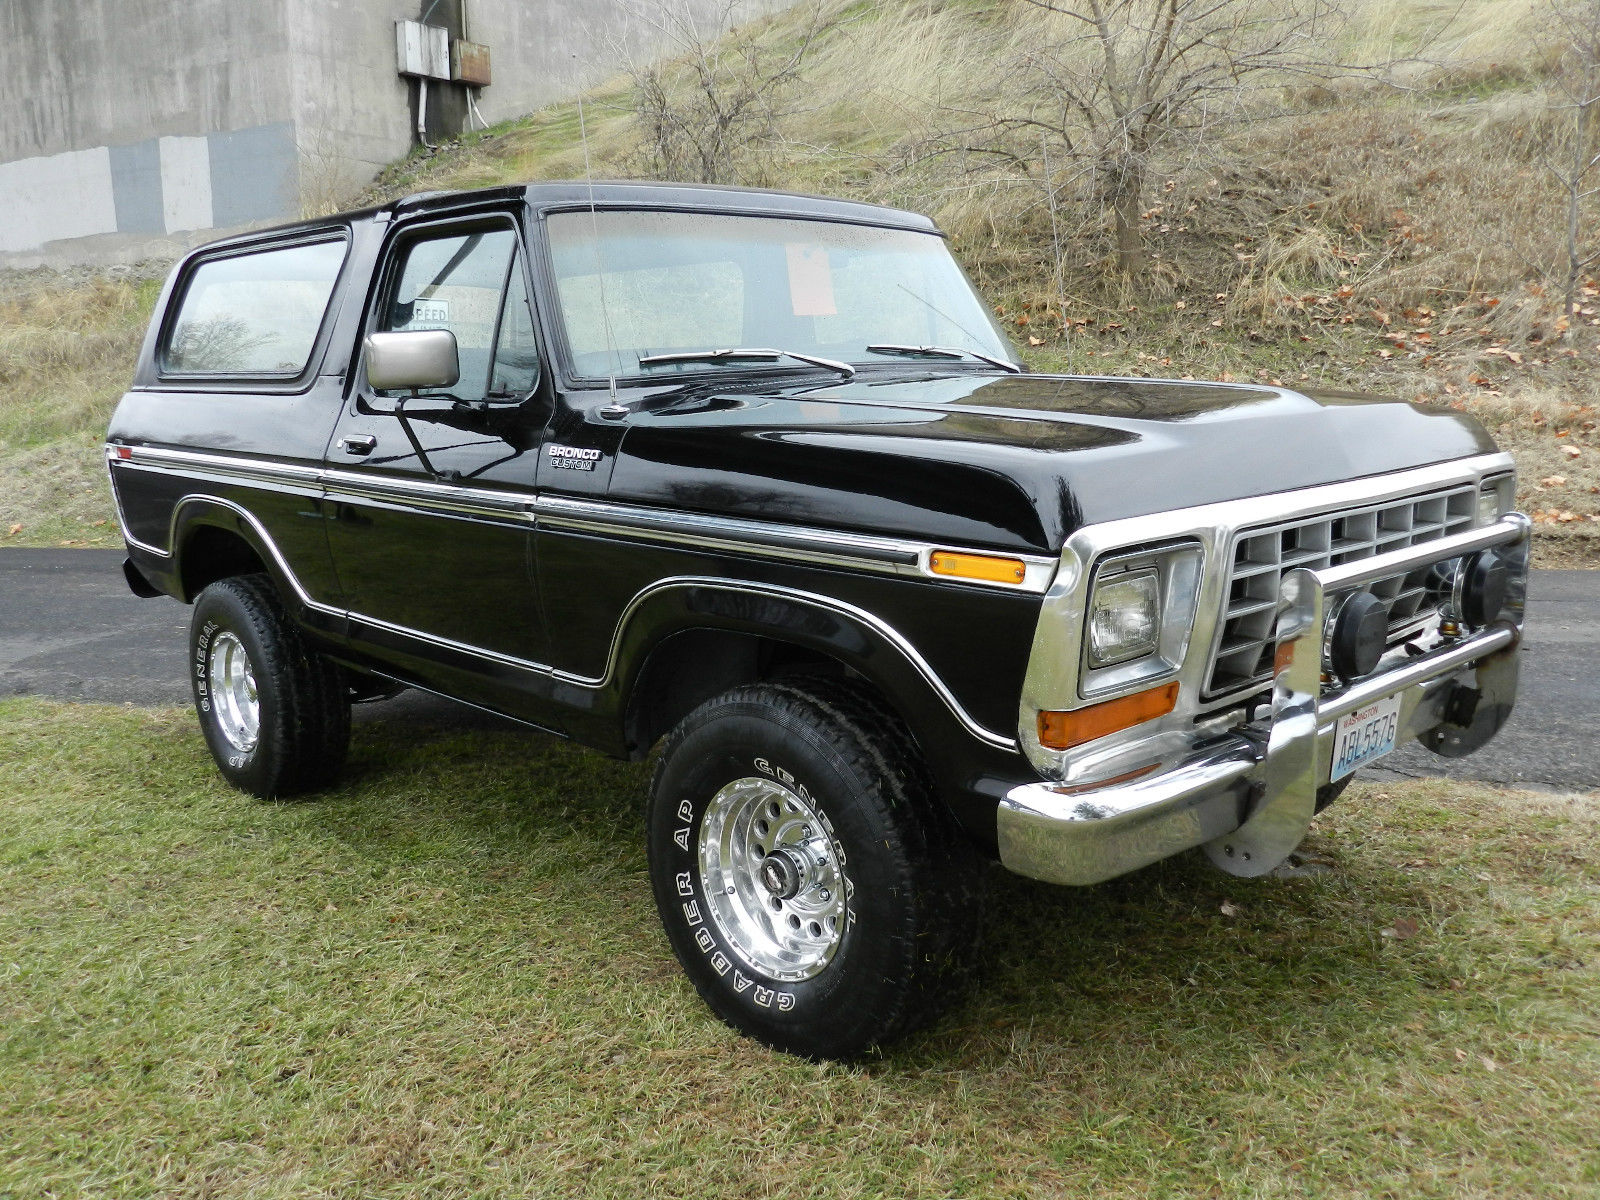 1979 ford bronco f150 4x4 xlt black on black classic solid original body classic ford bronco. Black Bedroom Furniture Sets. Home Design Ideas